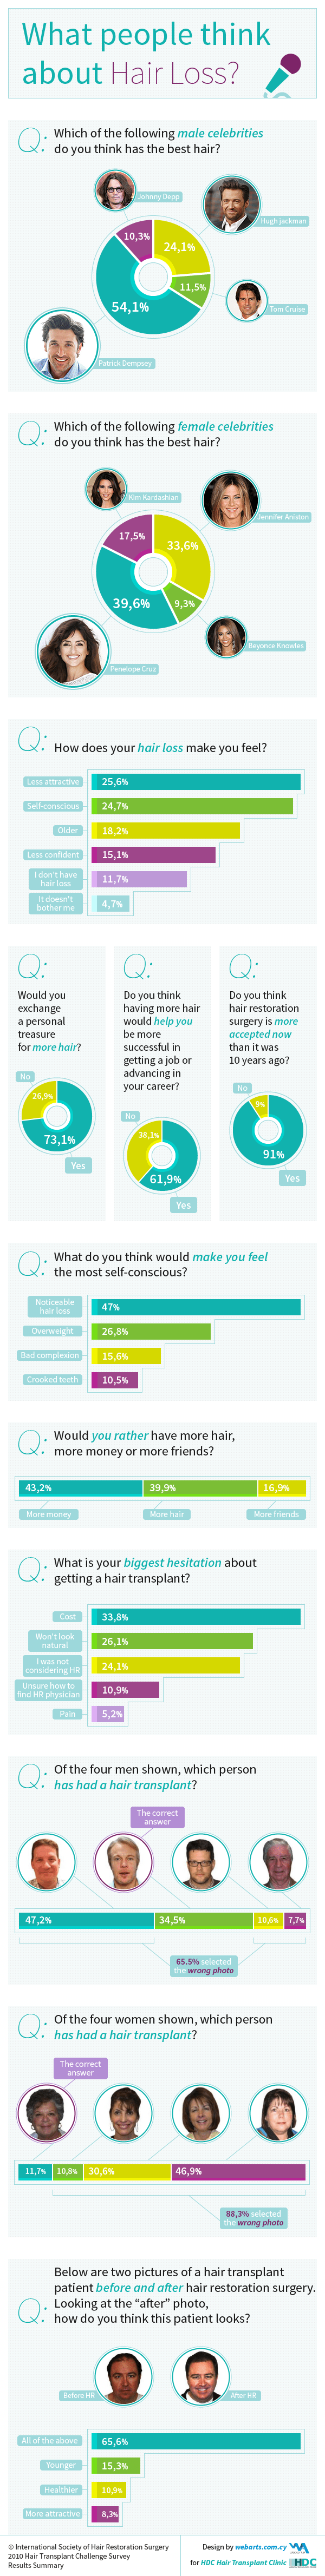 infographic-hair-loss-hdc